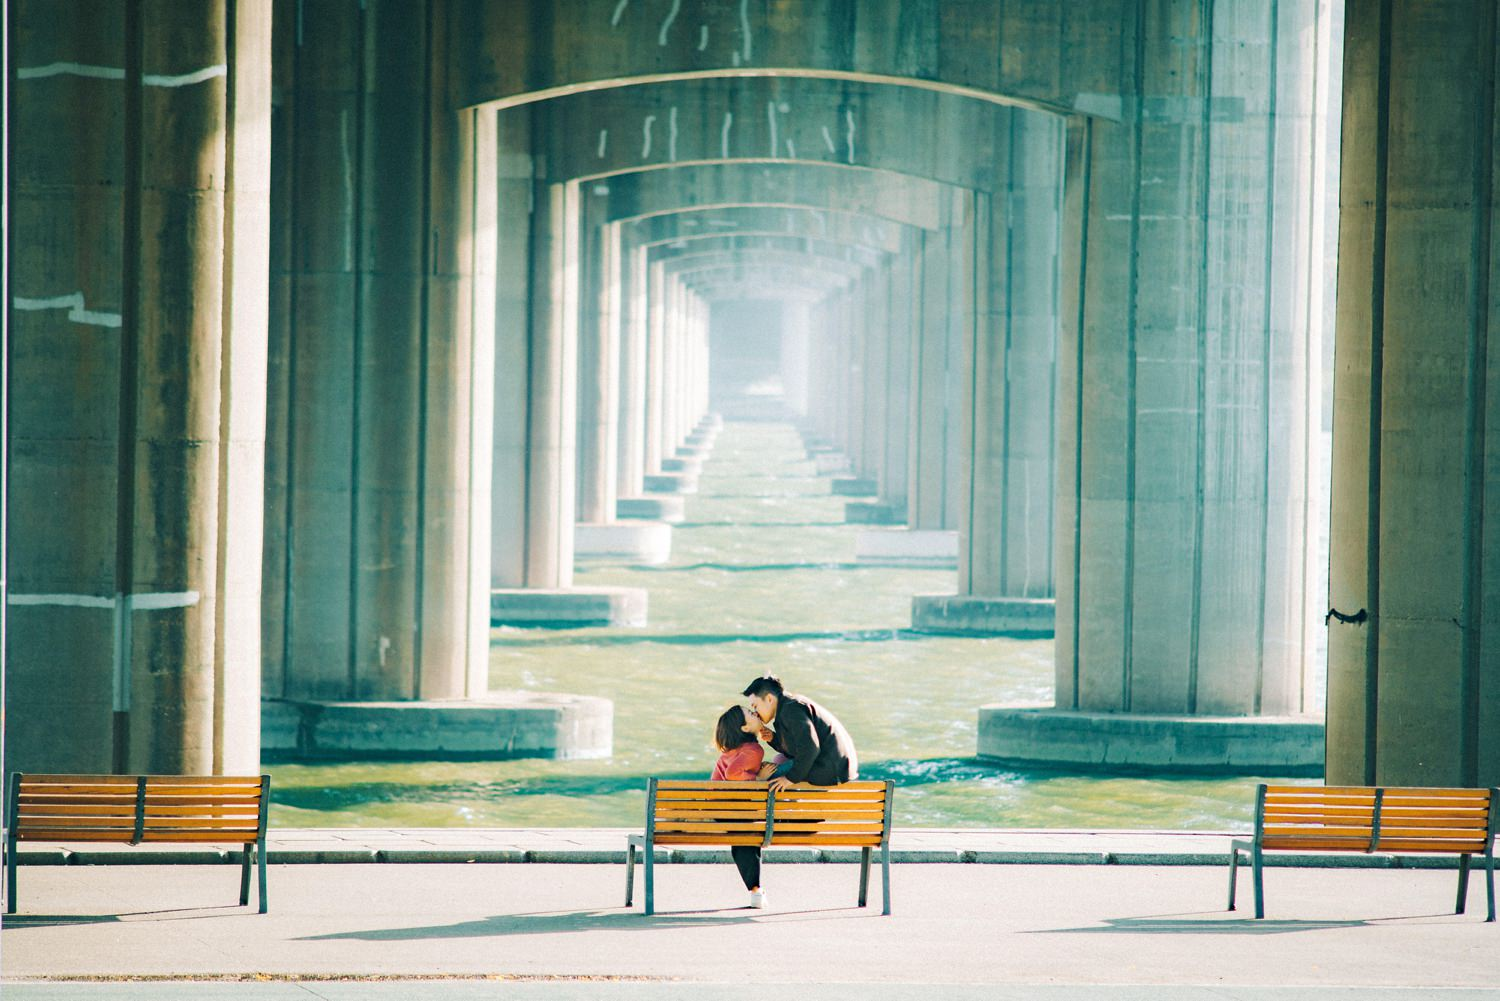 Oak St Studios - Stacey and Han- Seoul Korea Engagement Wedding Photographer -